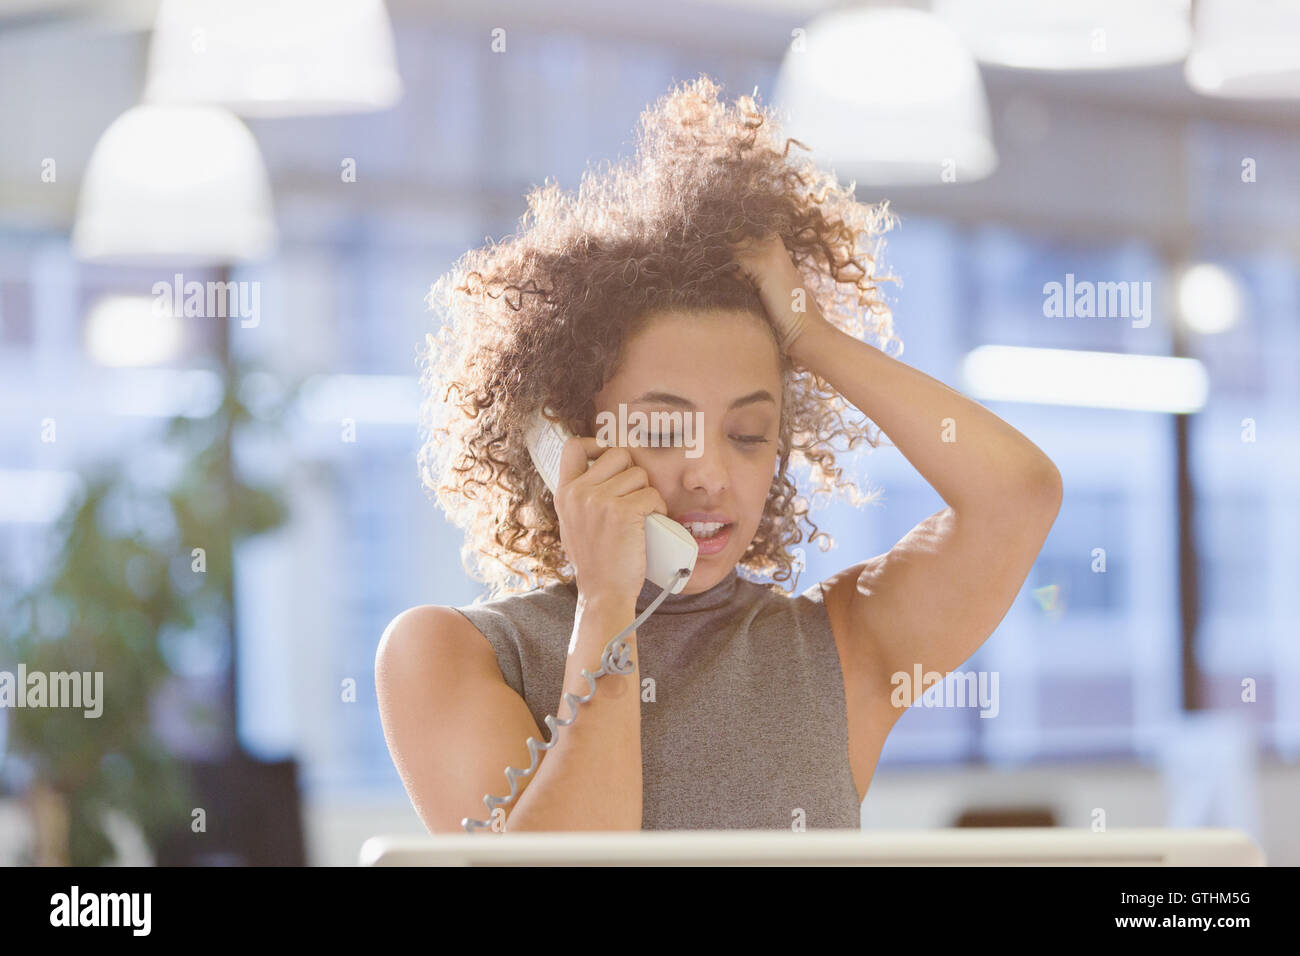 Businesswoman talking on telephone with hand in hair - Stock Image